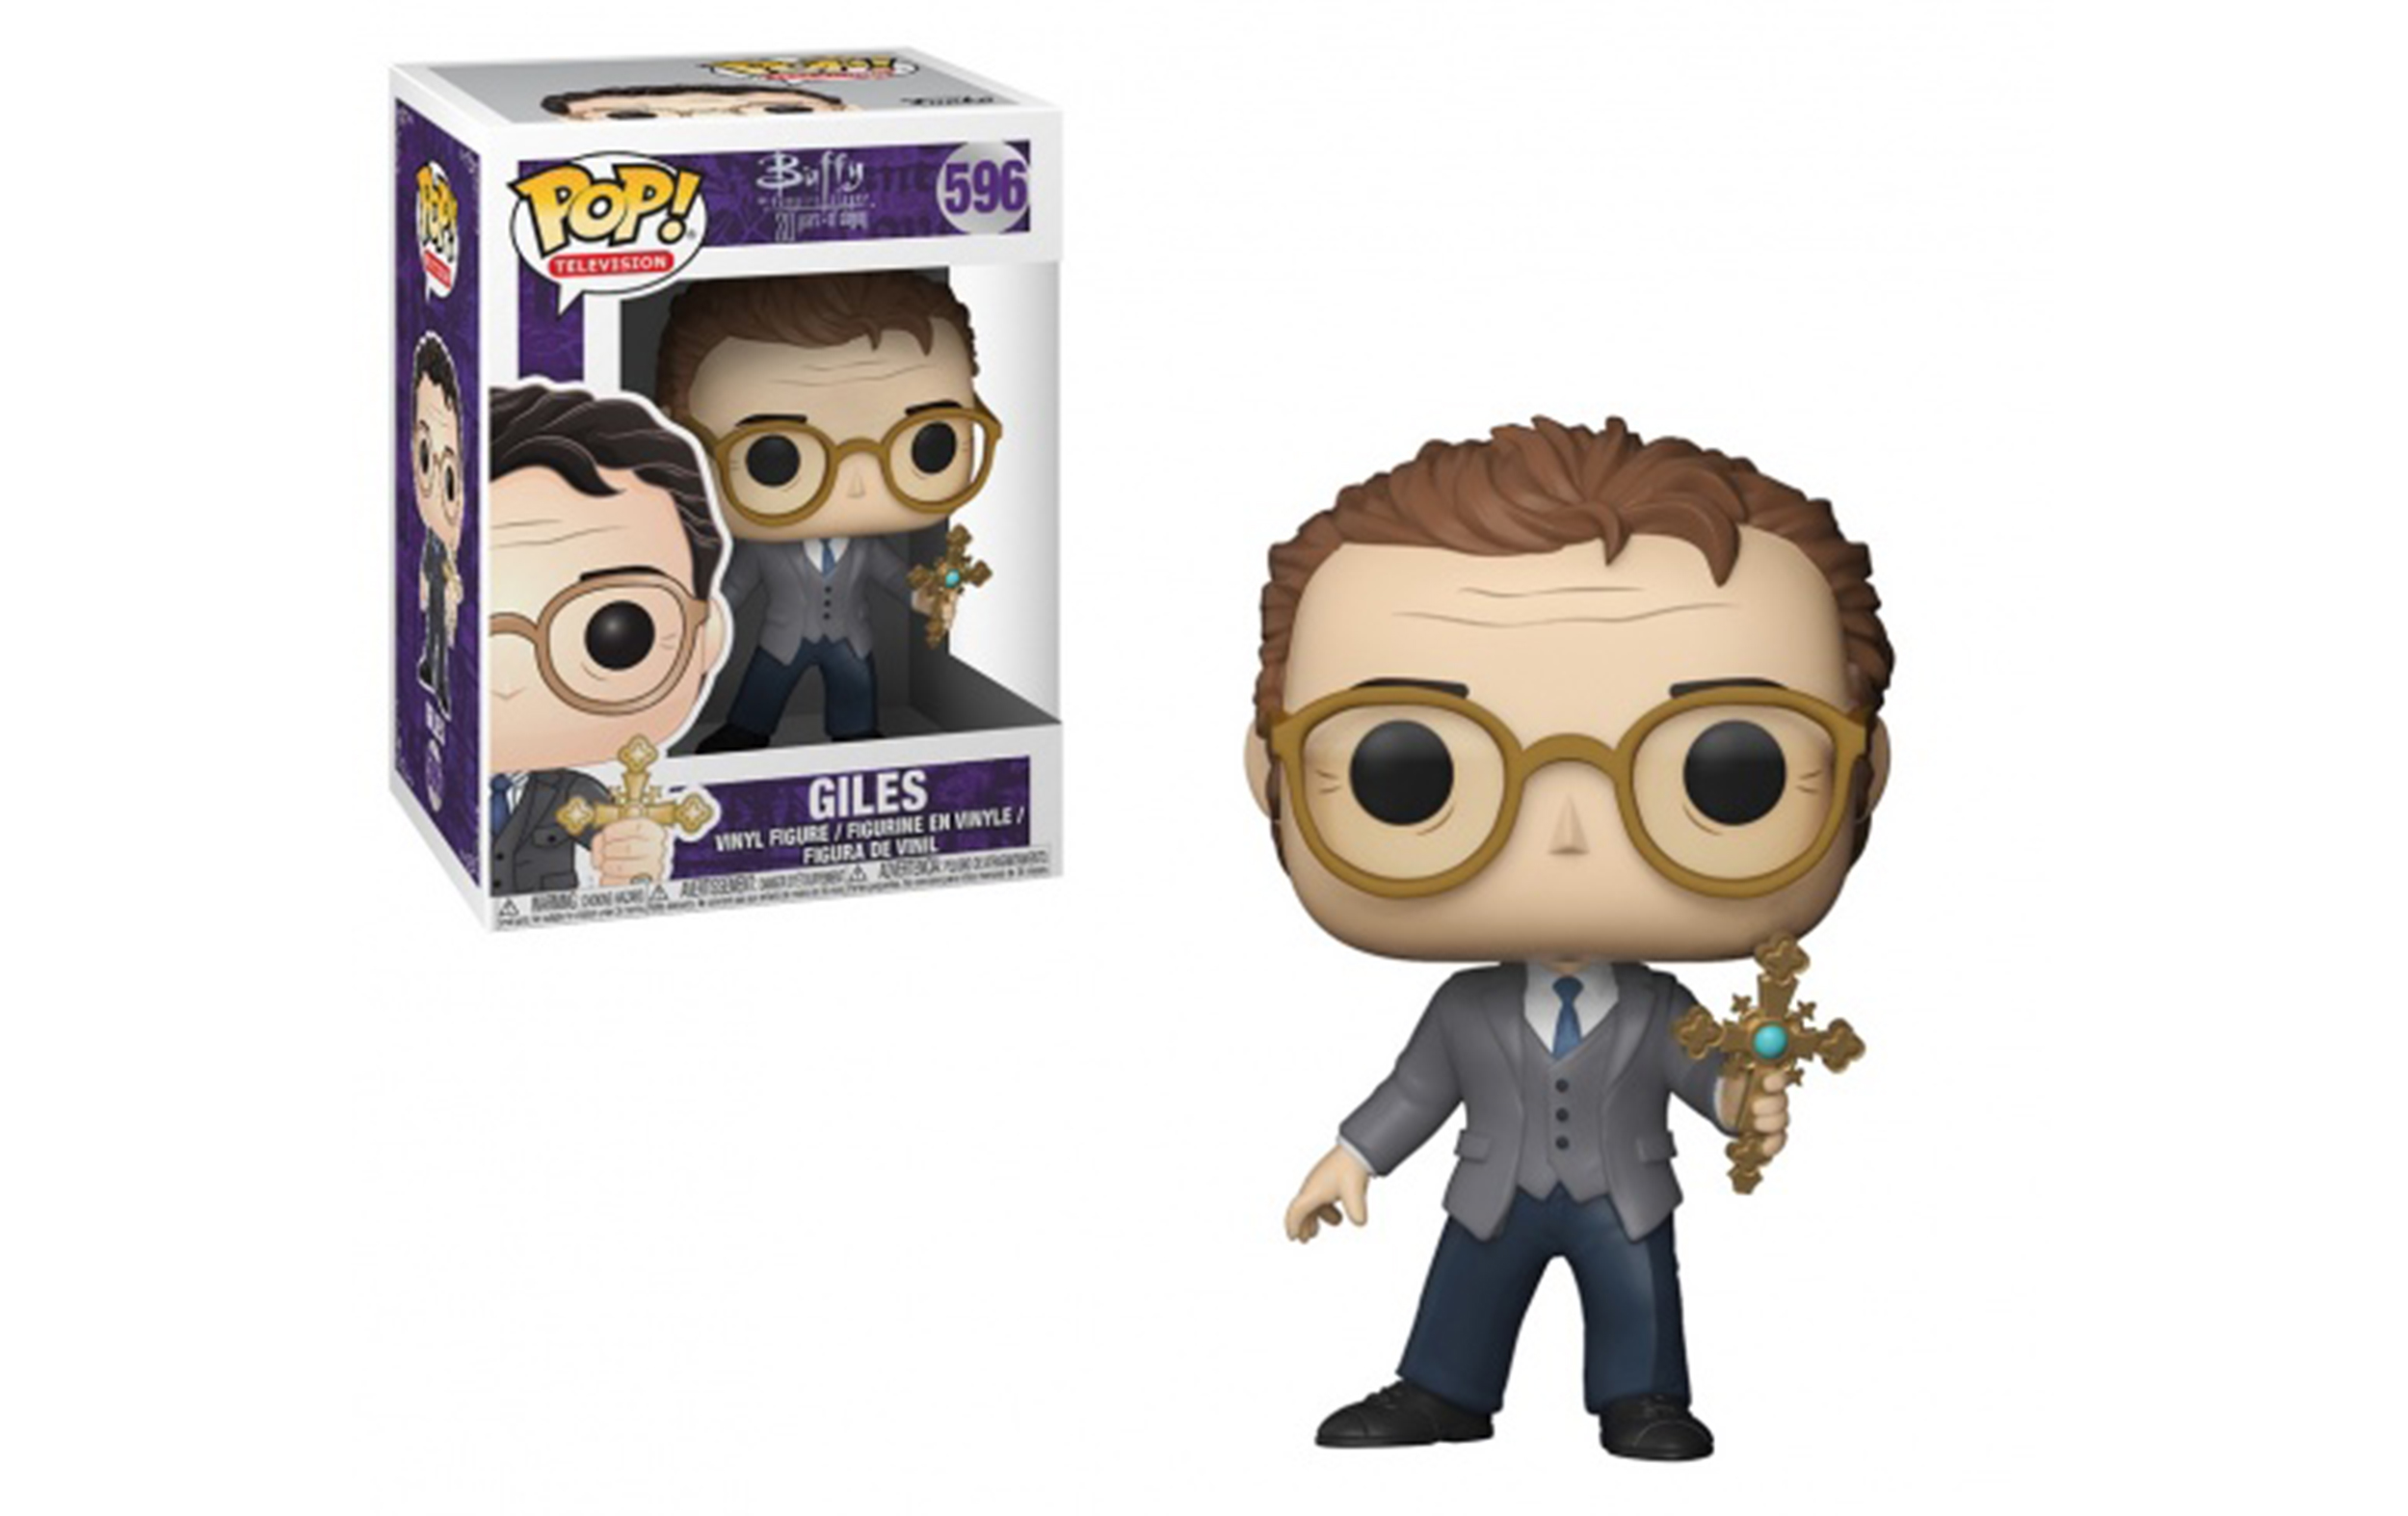 Buffy the Vampire Slayer Giles 596 Funko POP Vinyl Figure